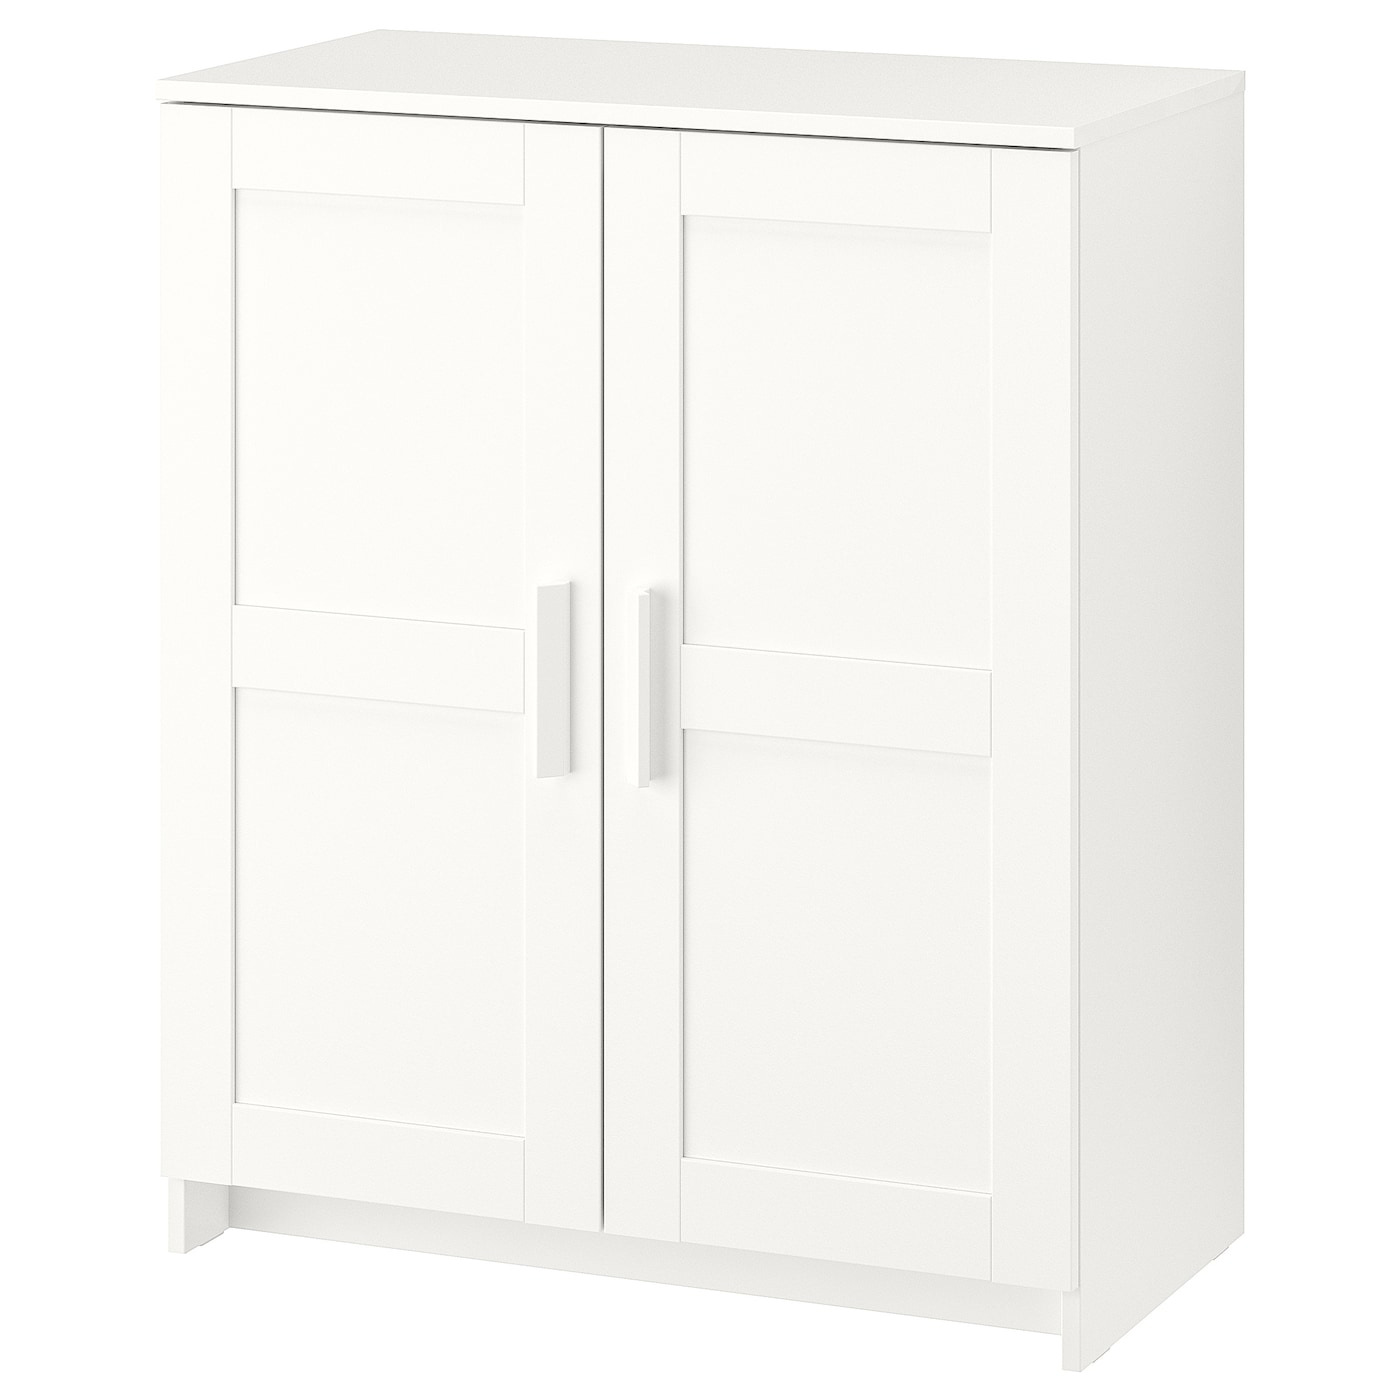 Brimnes Cabinet With Doors Black